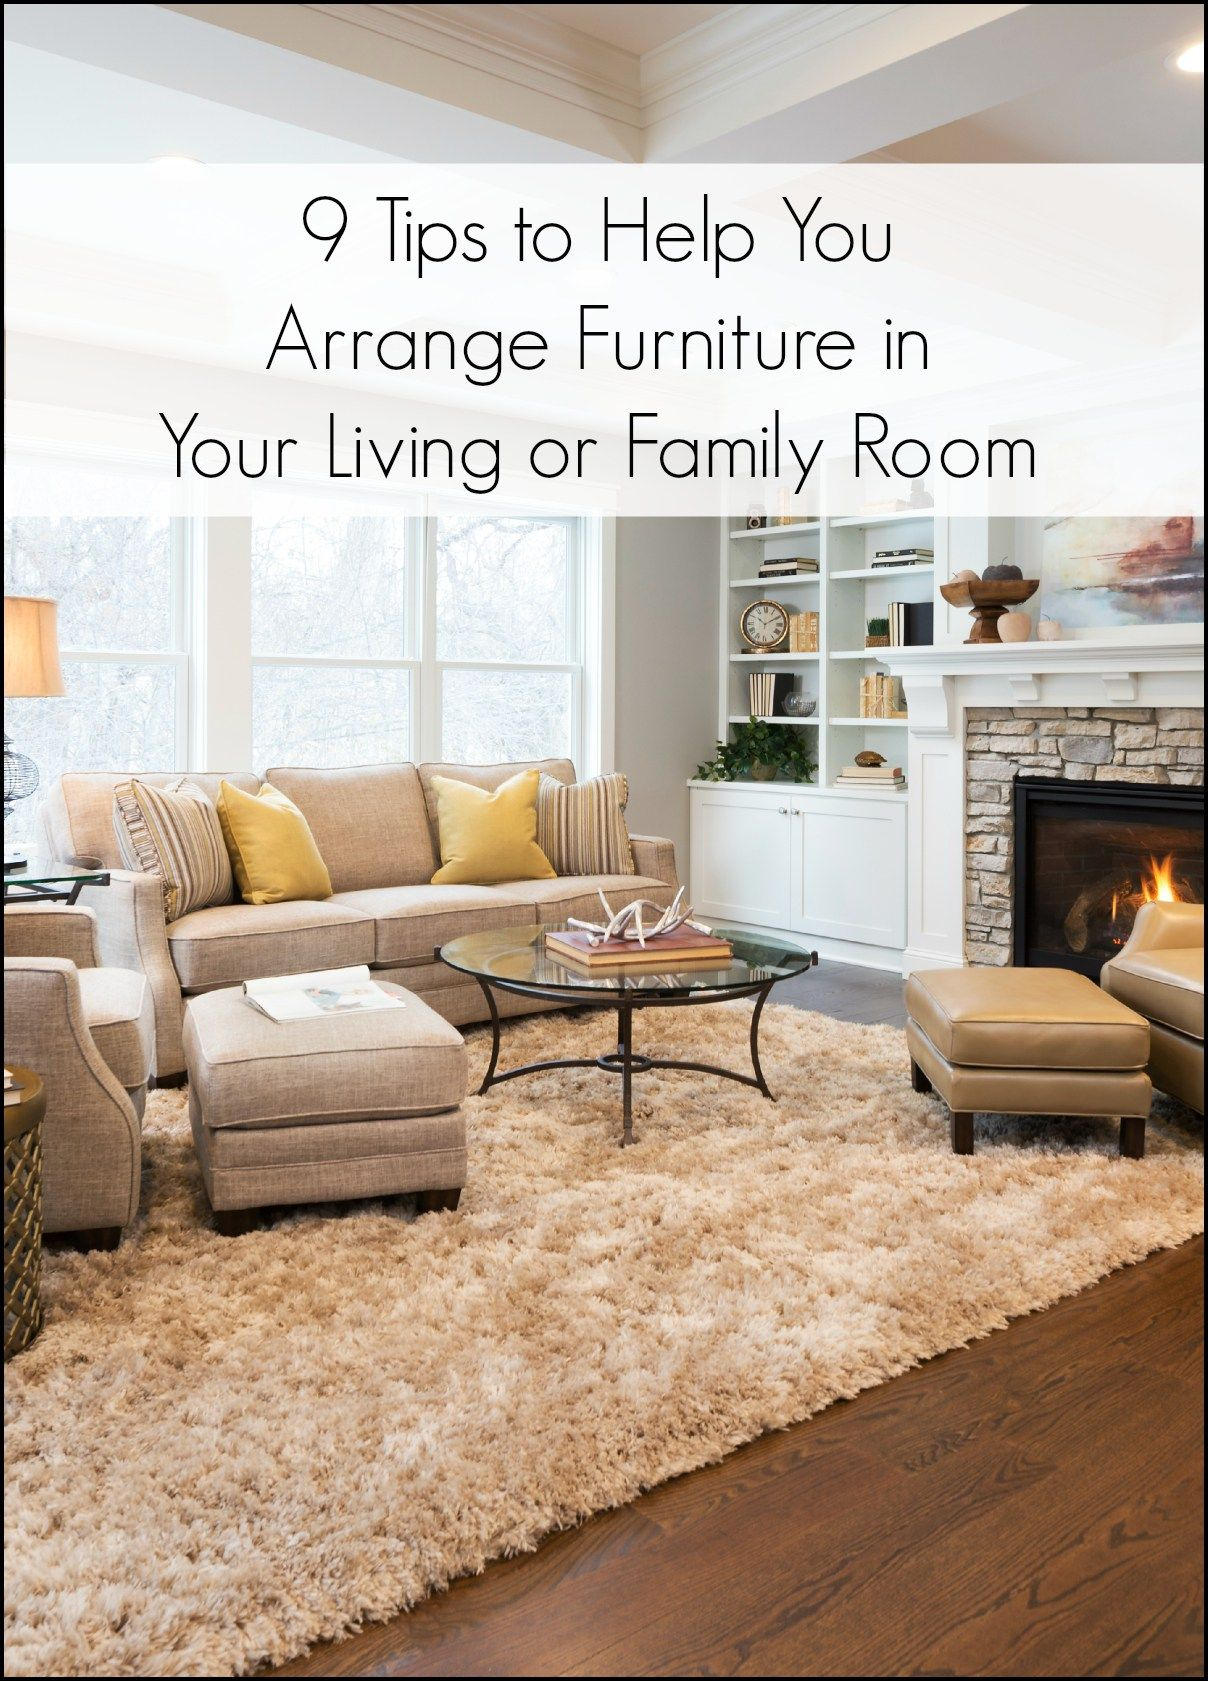 9 Tips For Arranging Furniture In A Living Room Or Family Room Arrange Furn